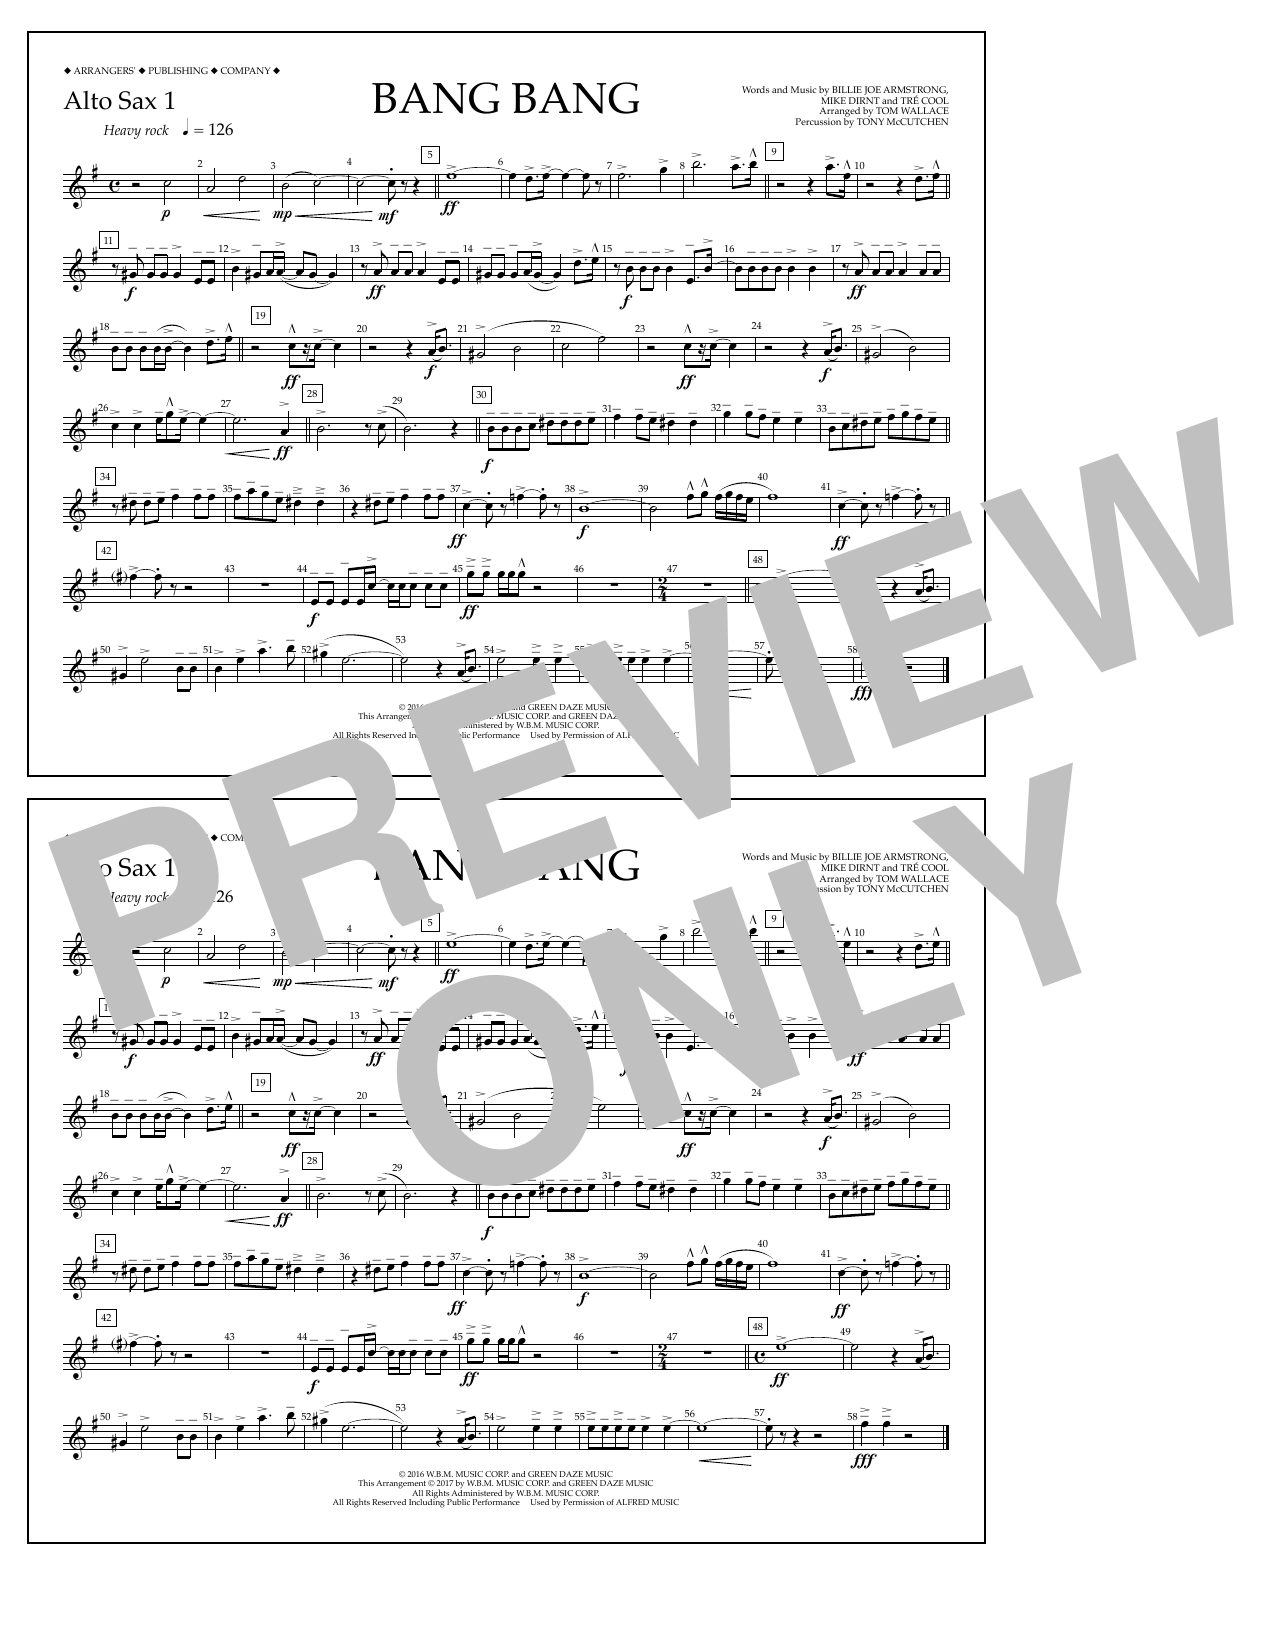 Bang Bang - Alto Sax 1 Sheet Music